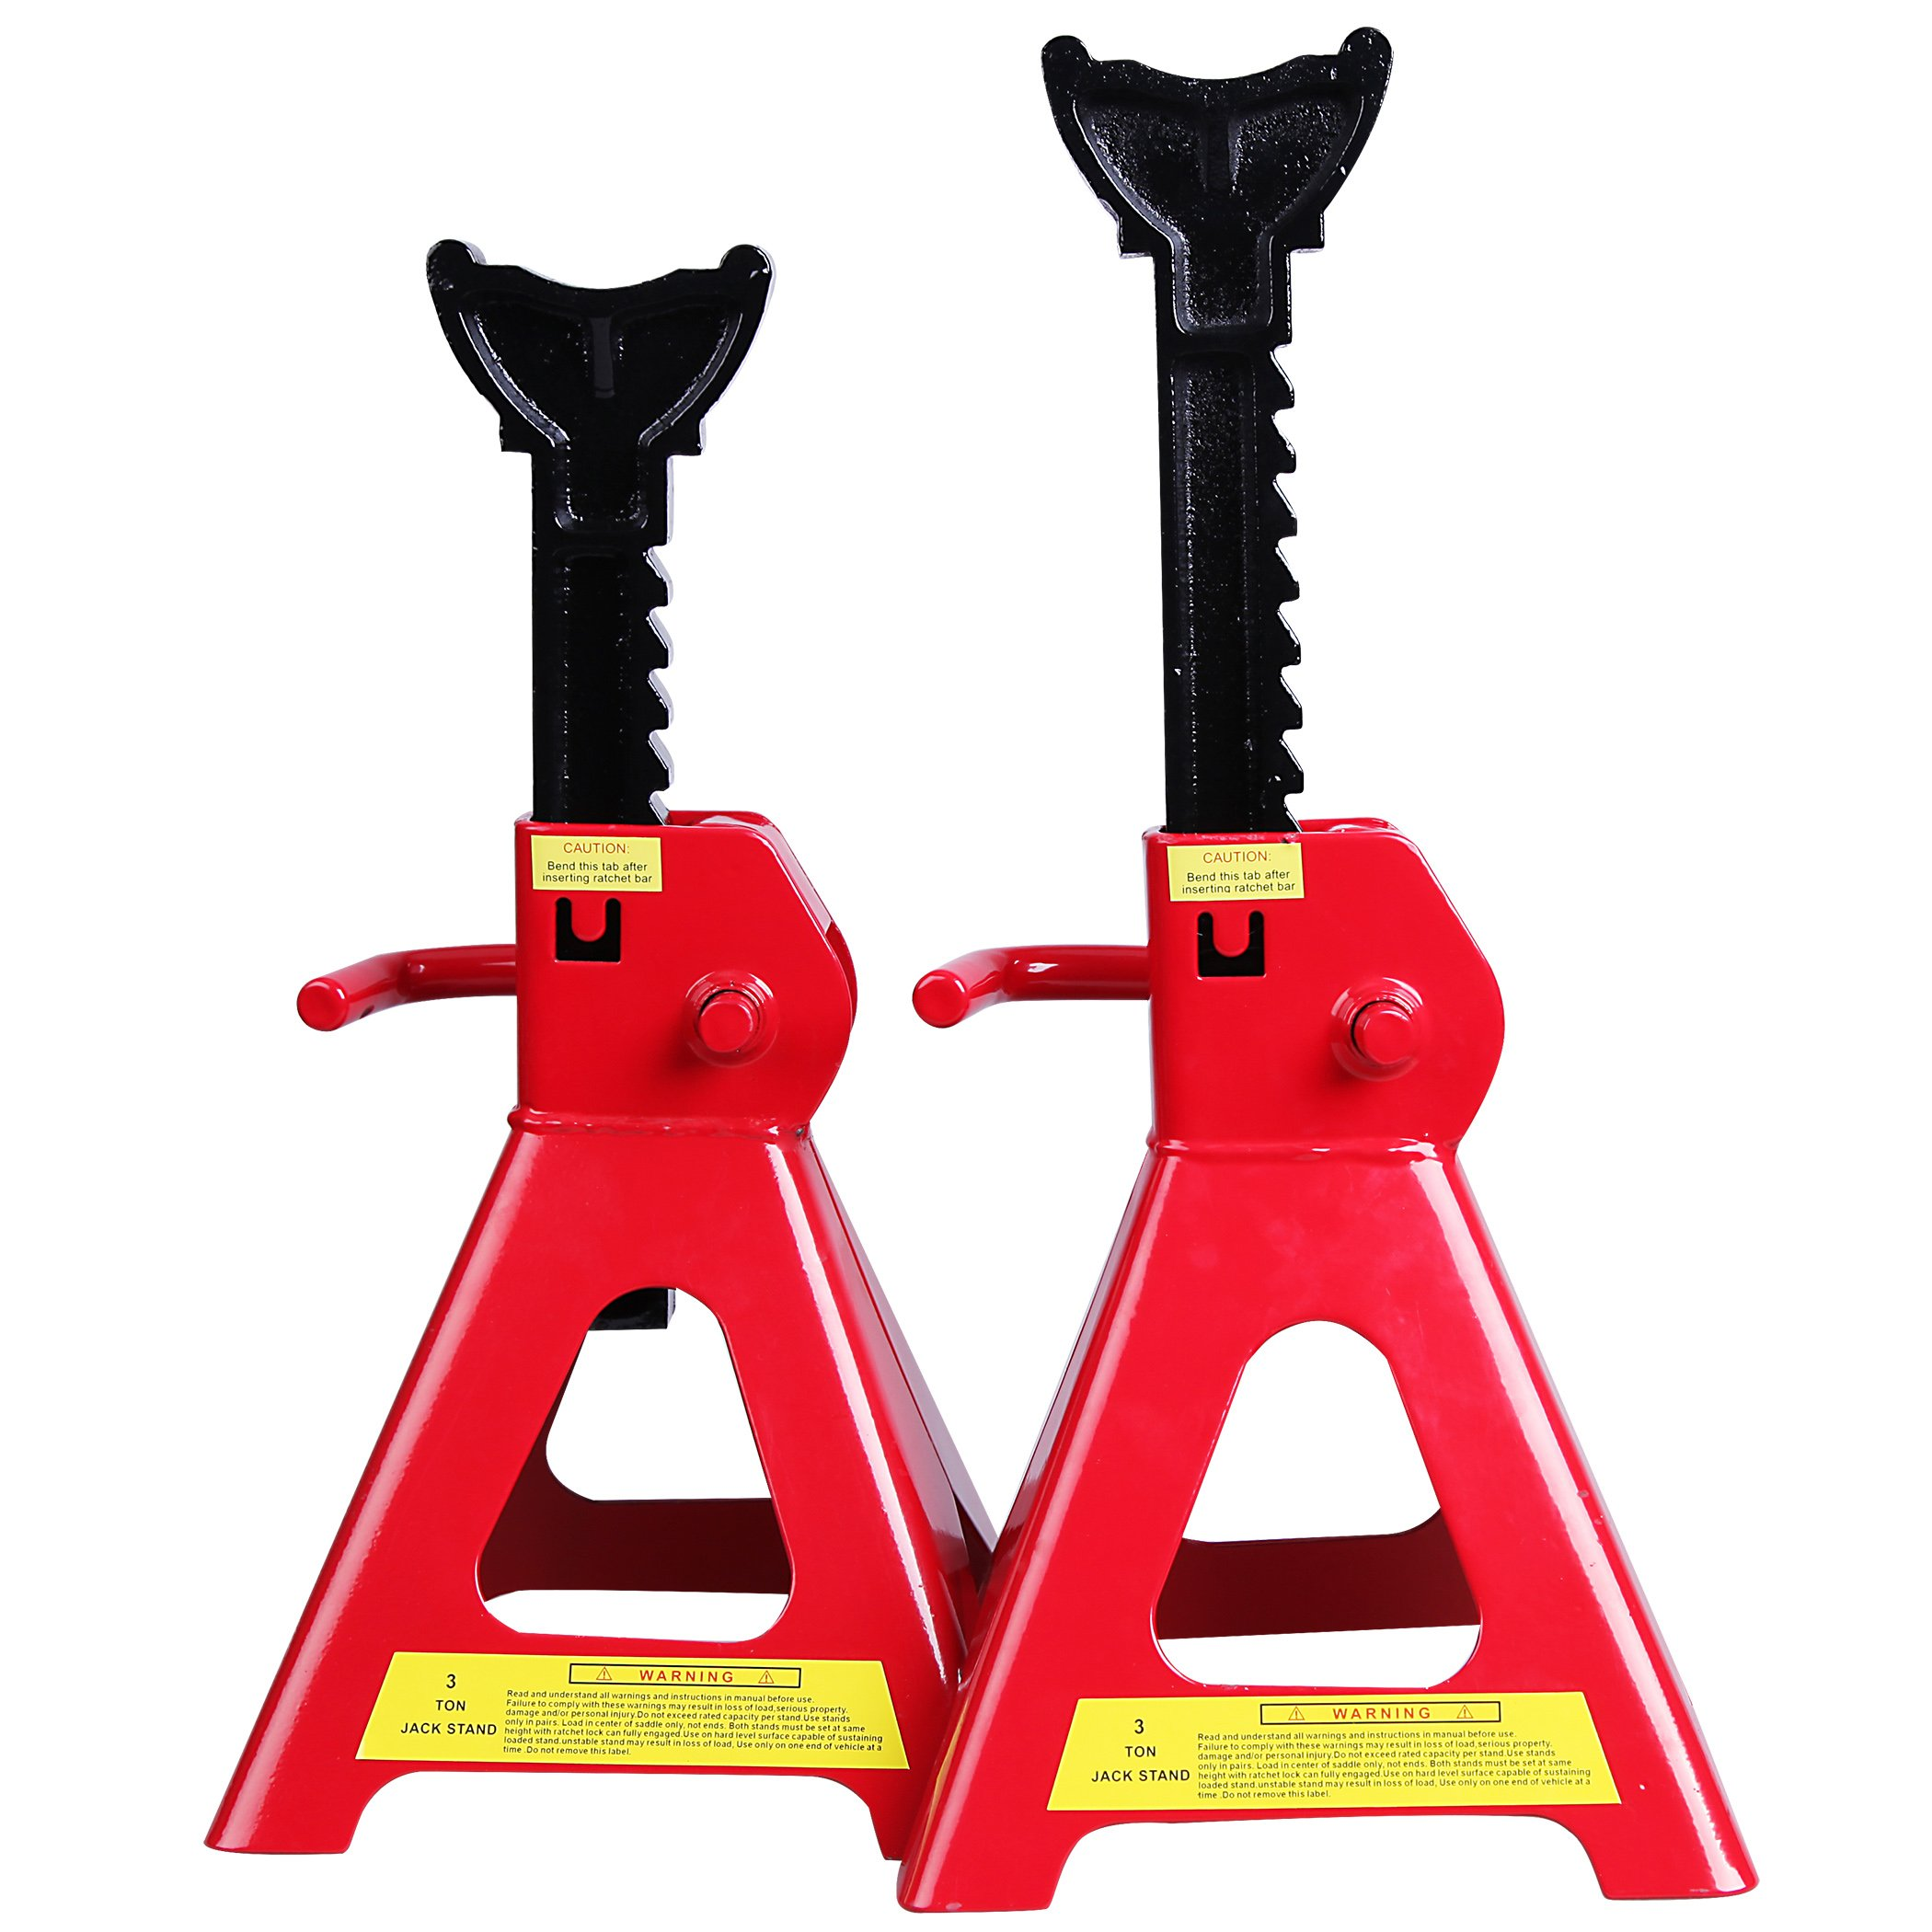 CARTMAN 3 Ton Jack Stands (Sold in Pairs) by CARTMAN